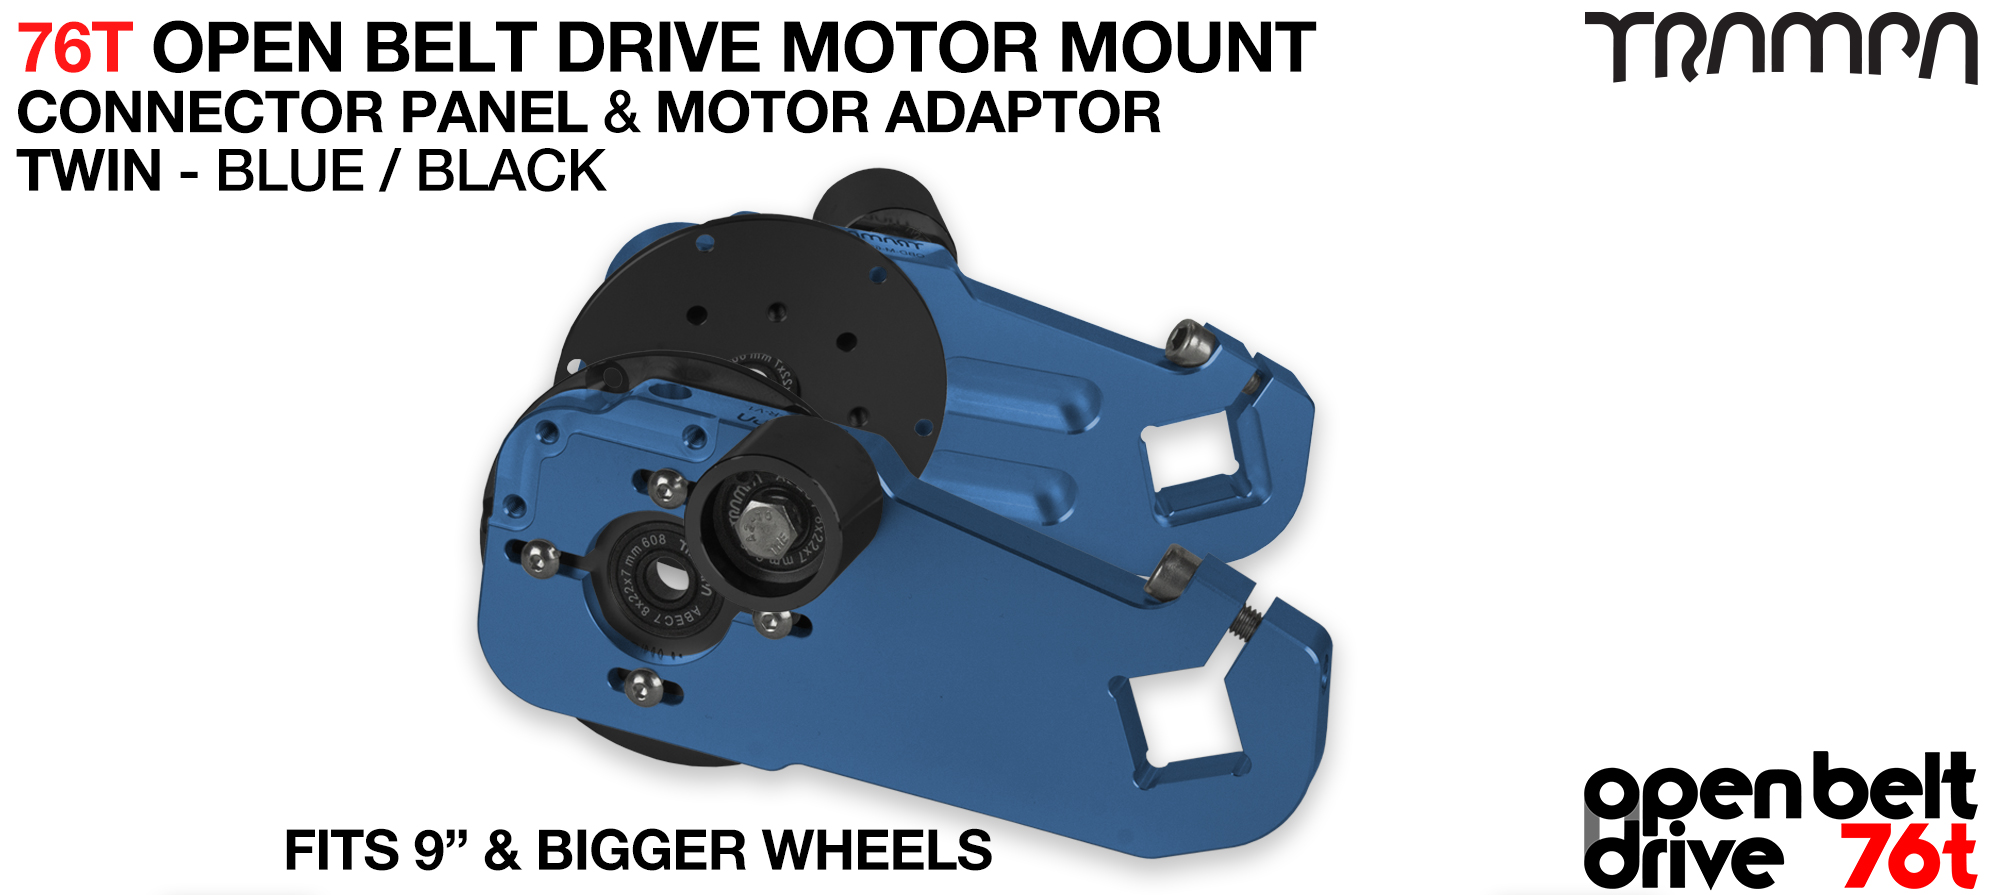 76T Open Belt Drive Motor Mount & Motor Adaptor - TWIN BLUE